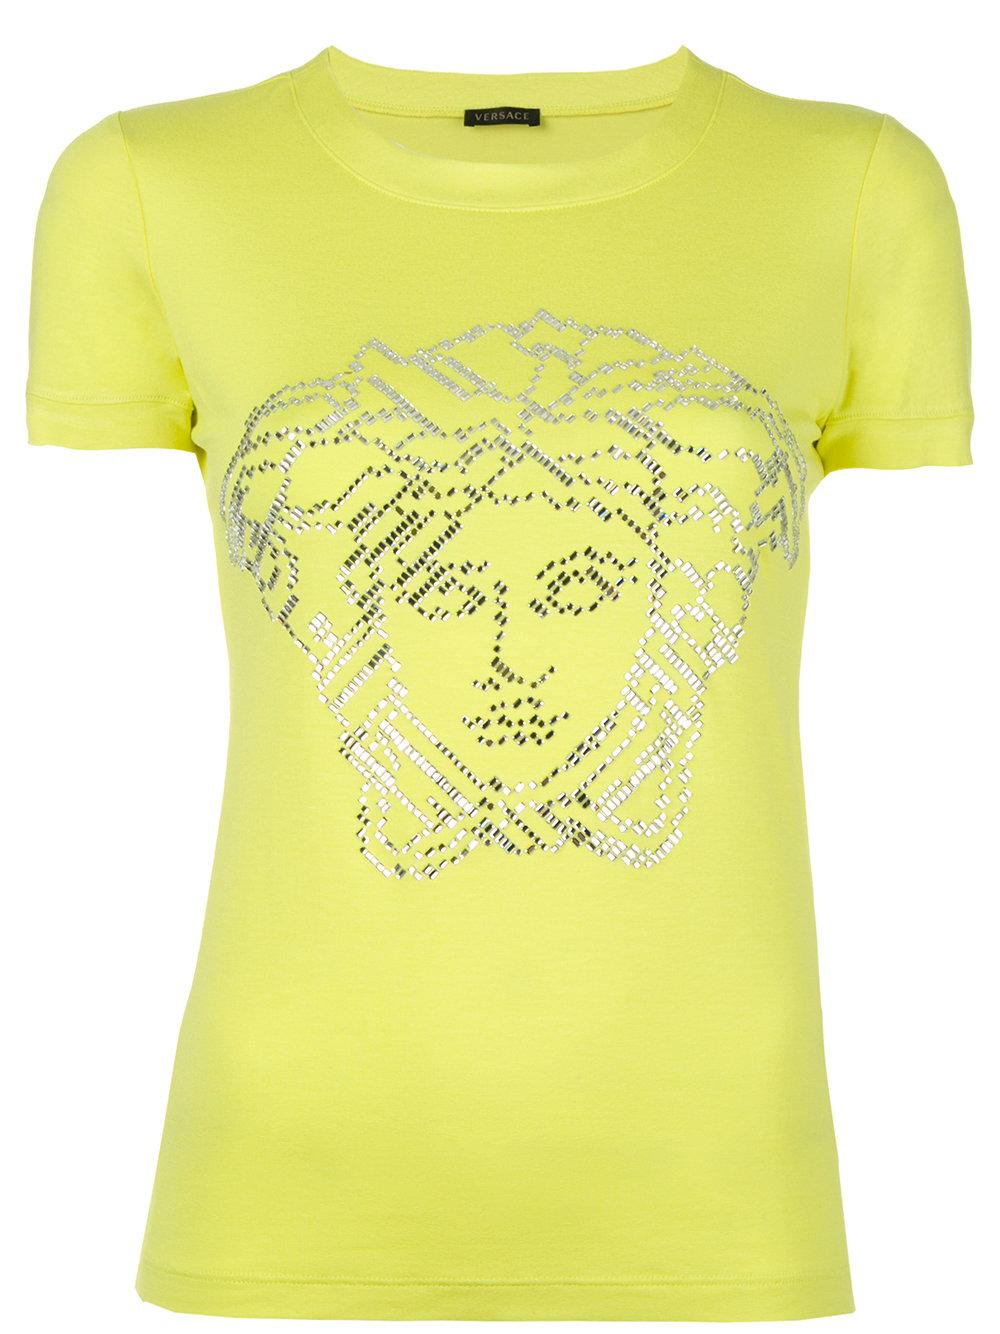 Lyst versace crystal embellished t shirt in green for Versace t shirts women